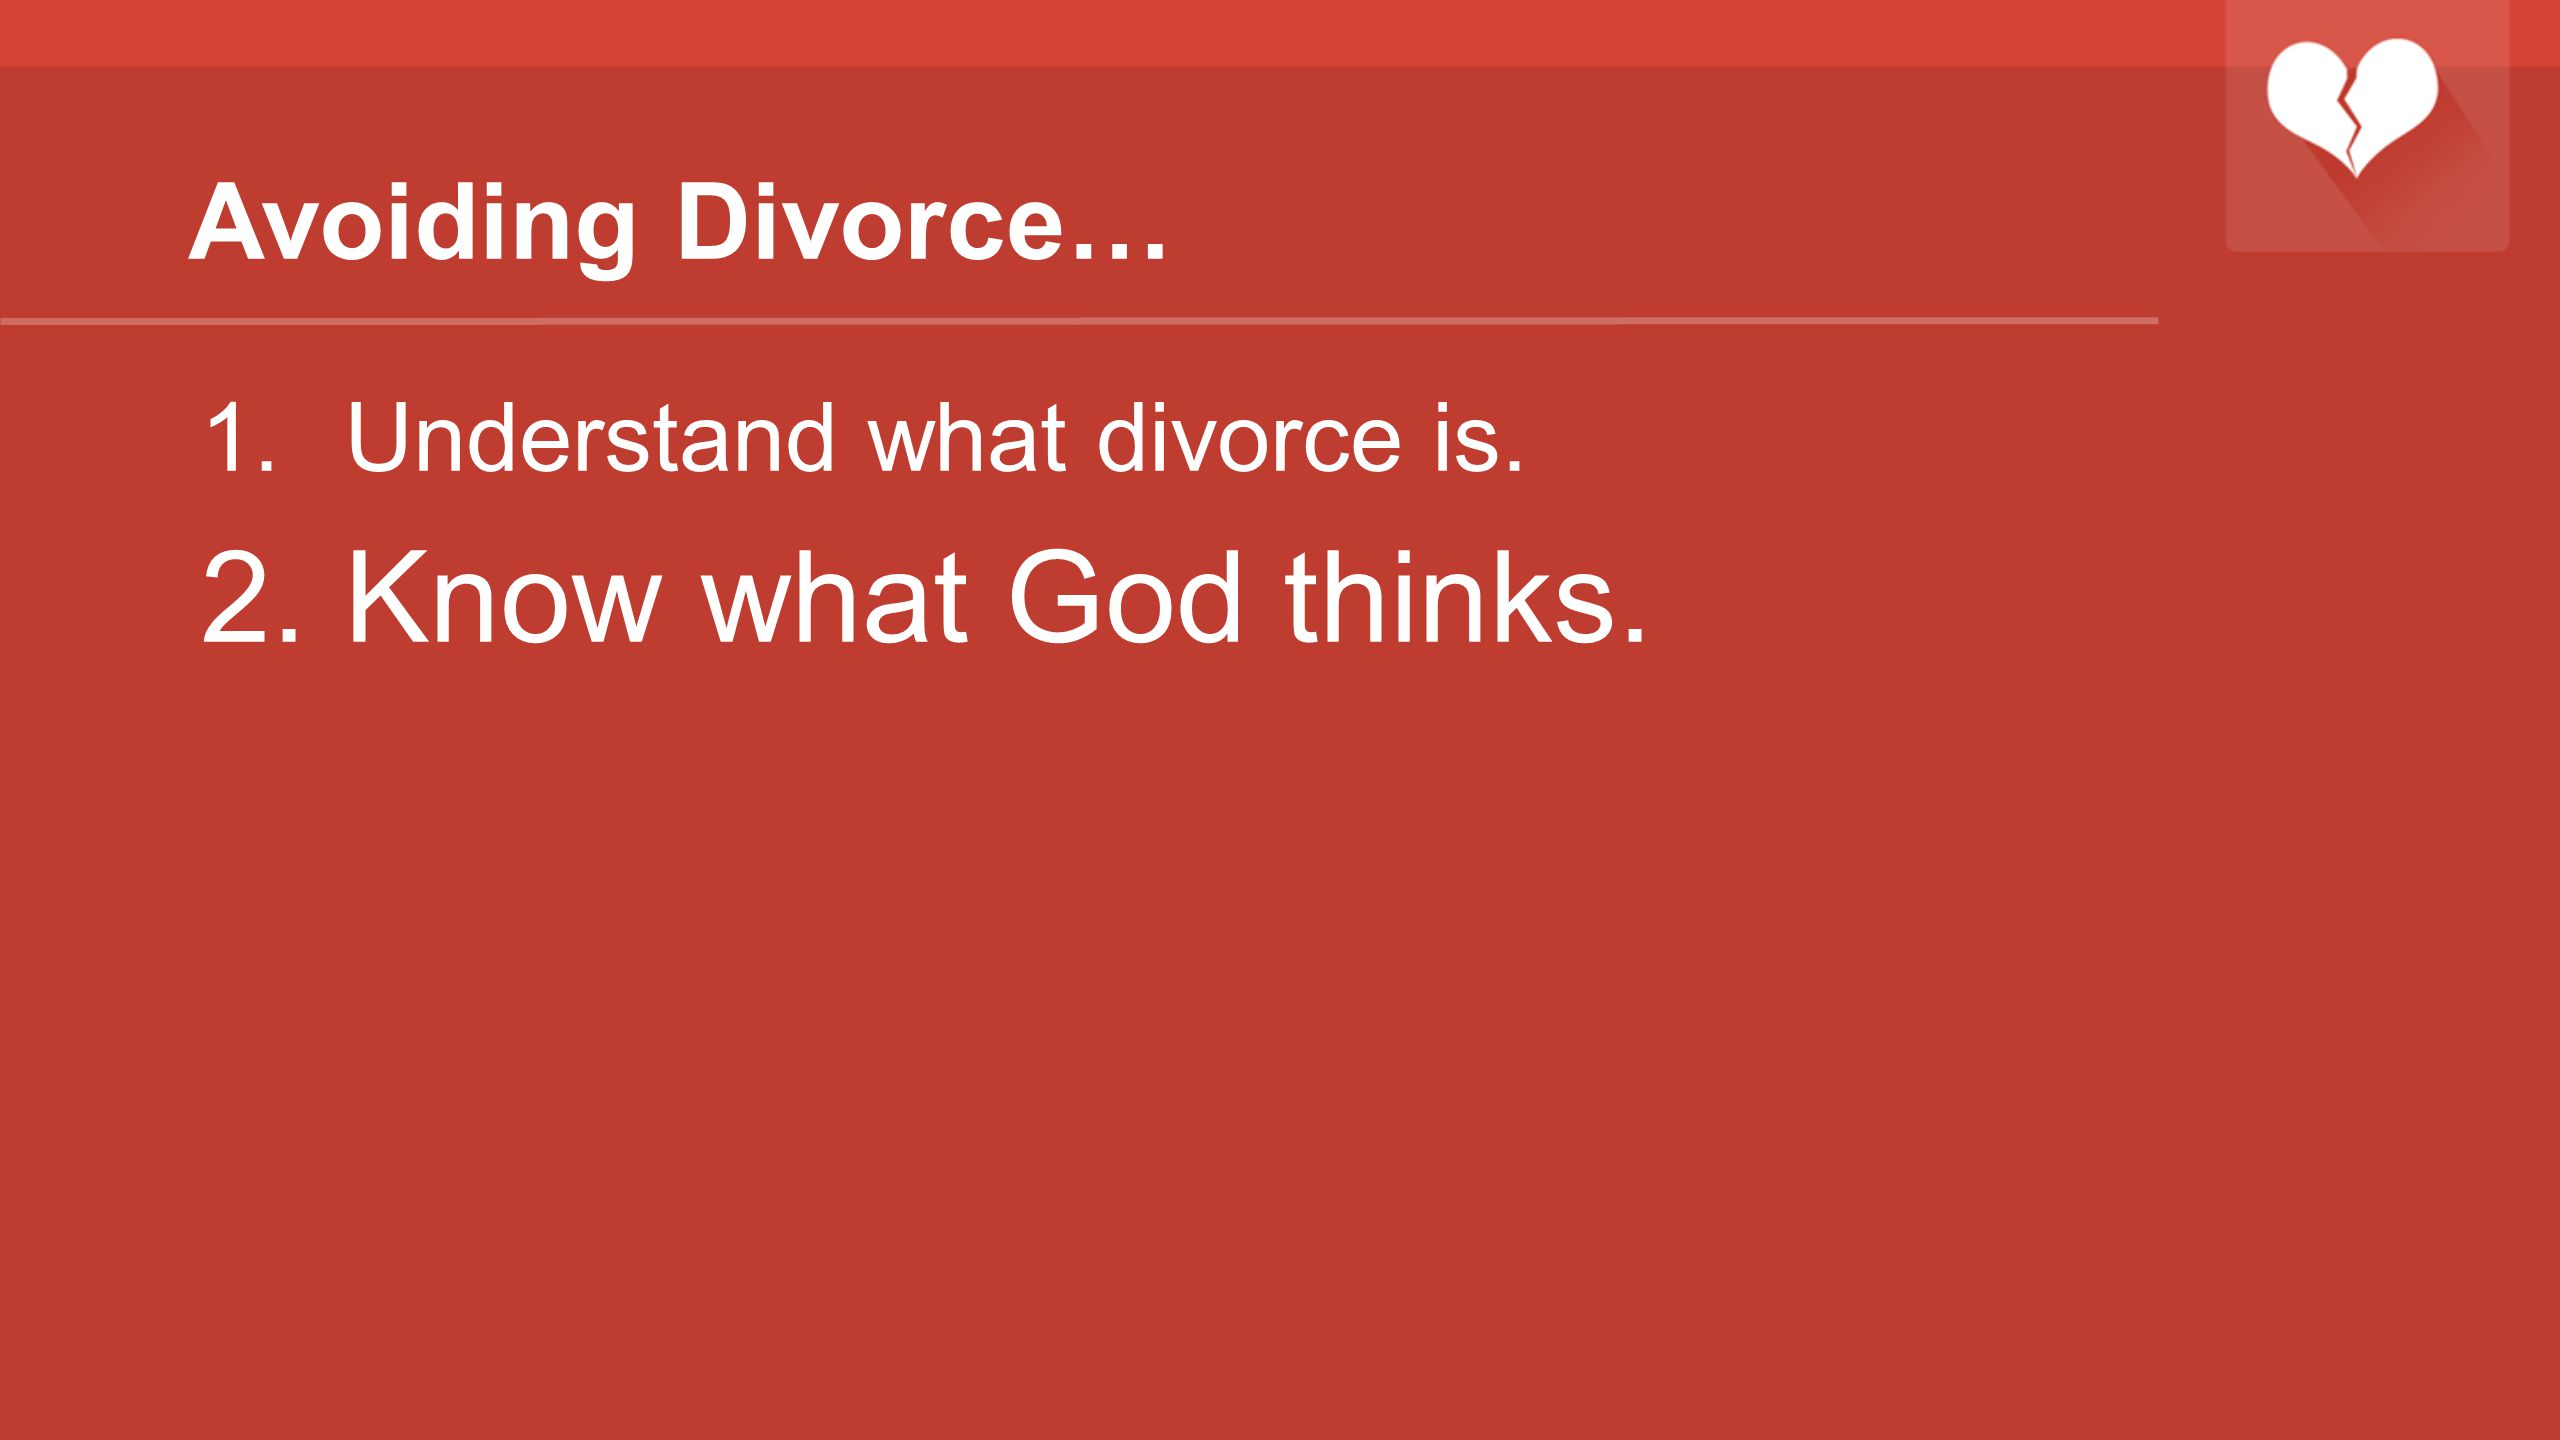 Avoiding Divorce… Understand what divorce is. Know what God thinks.